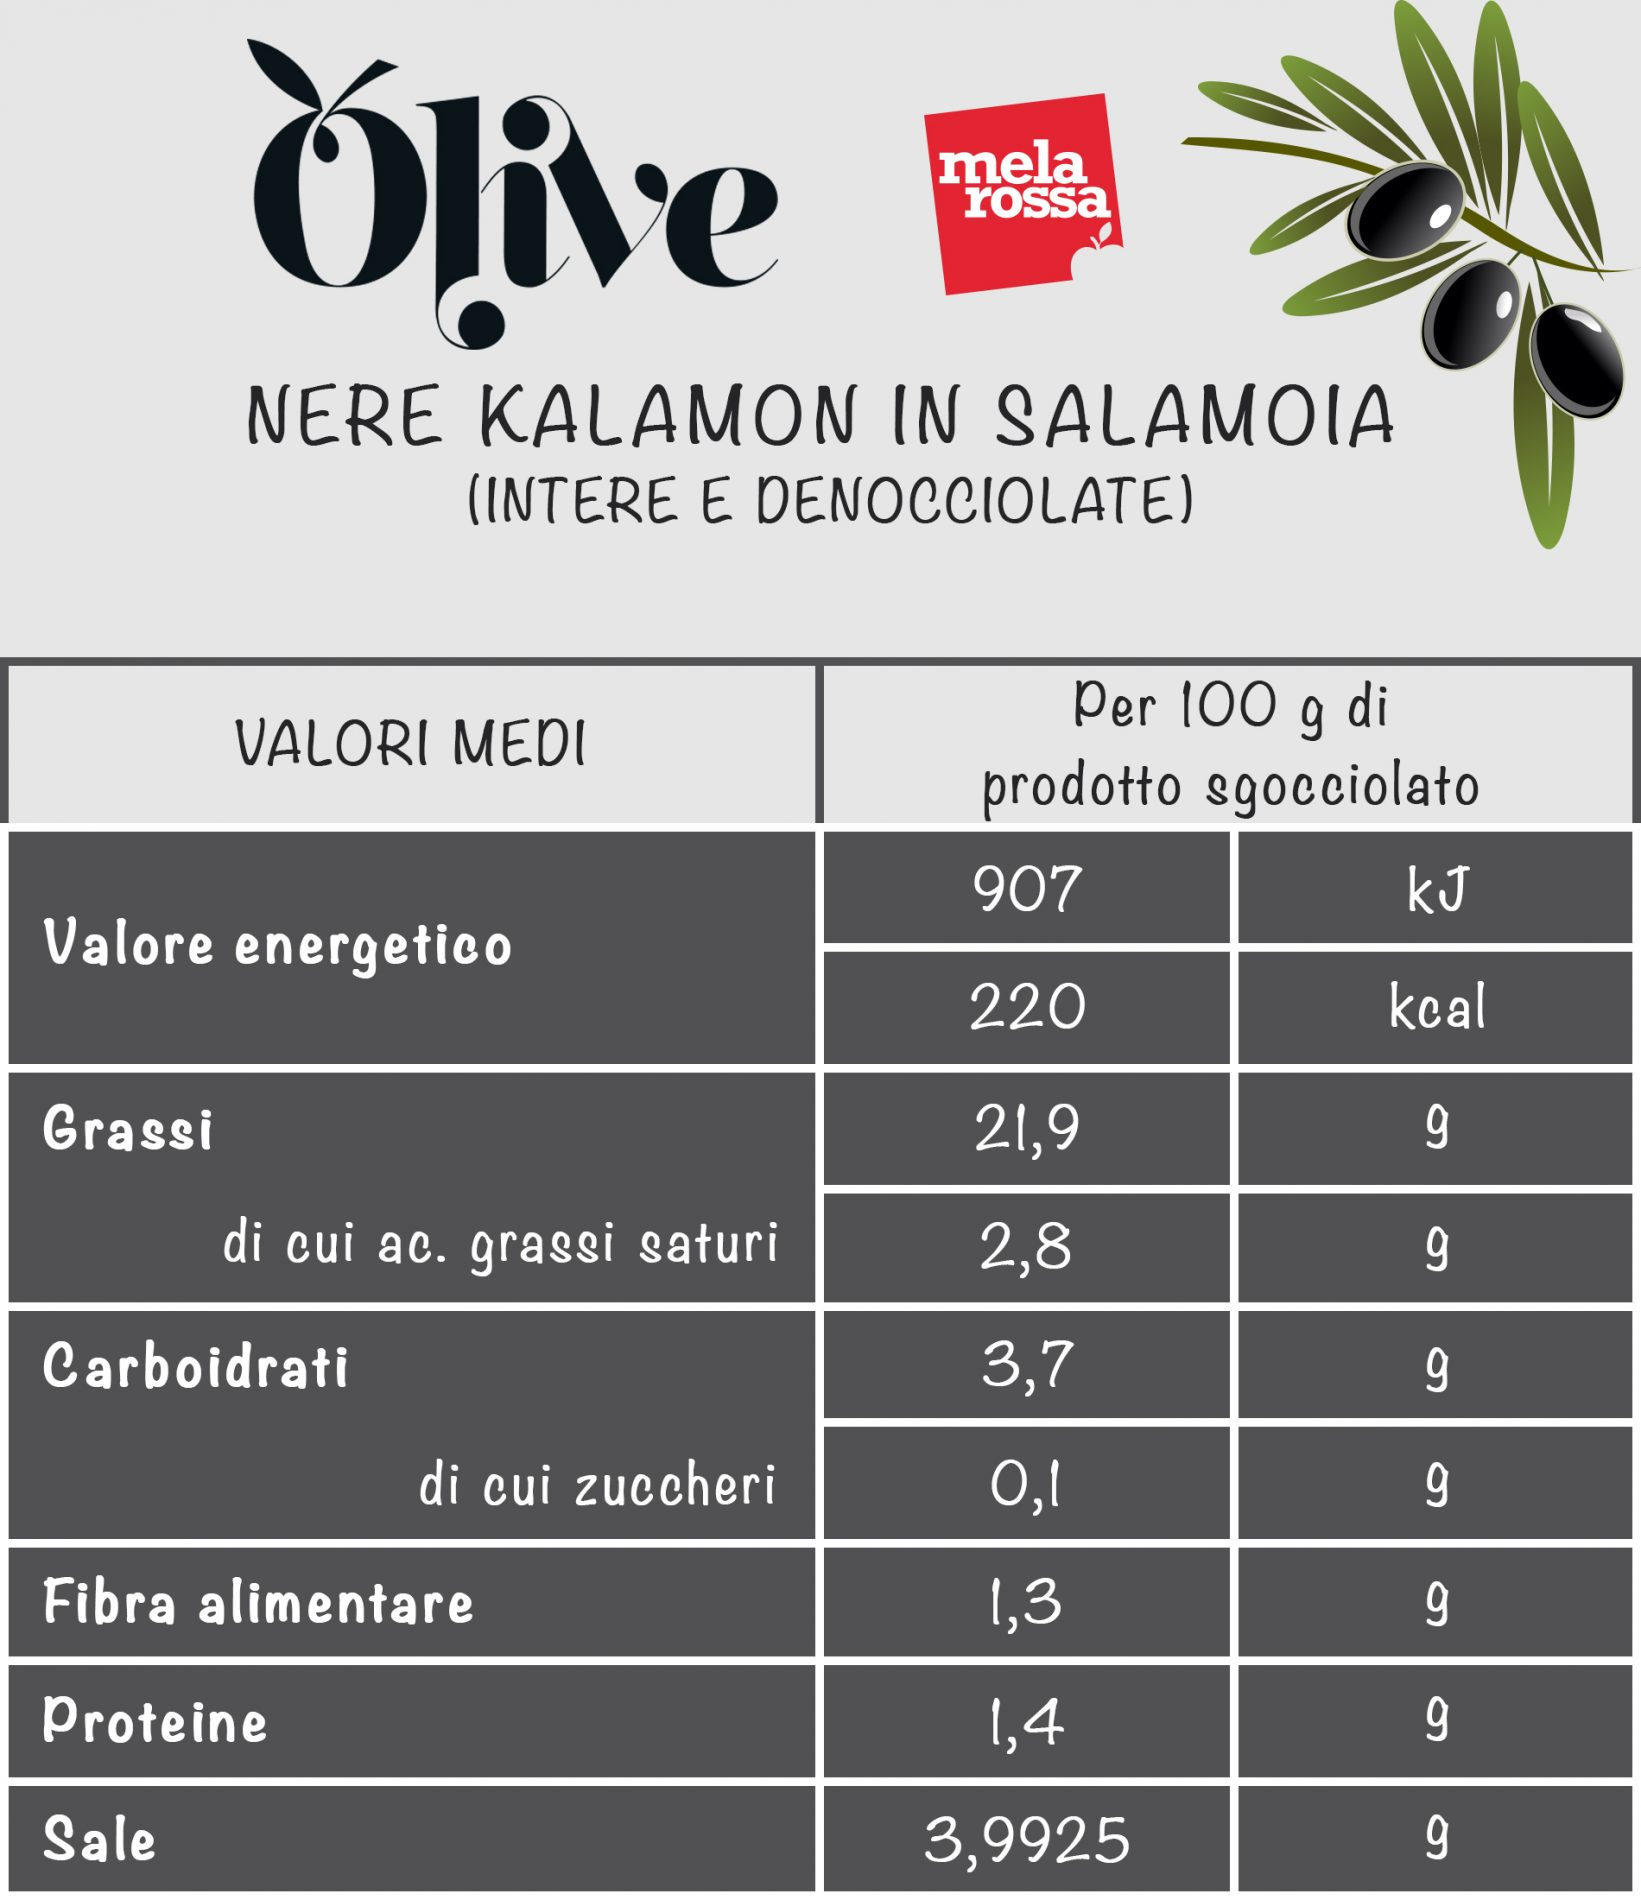 olive nere: calorie